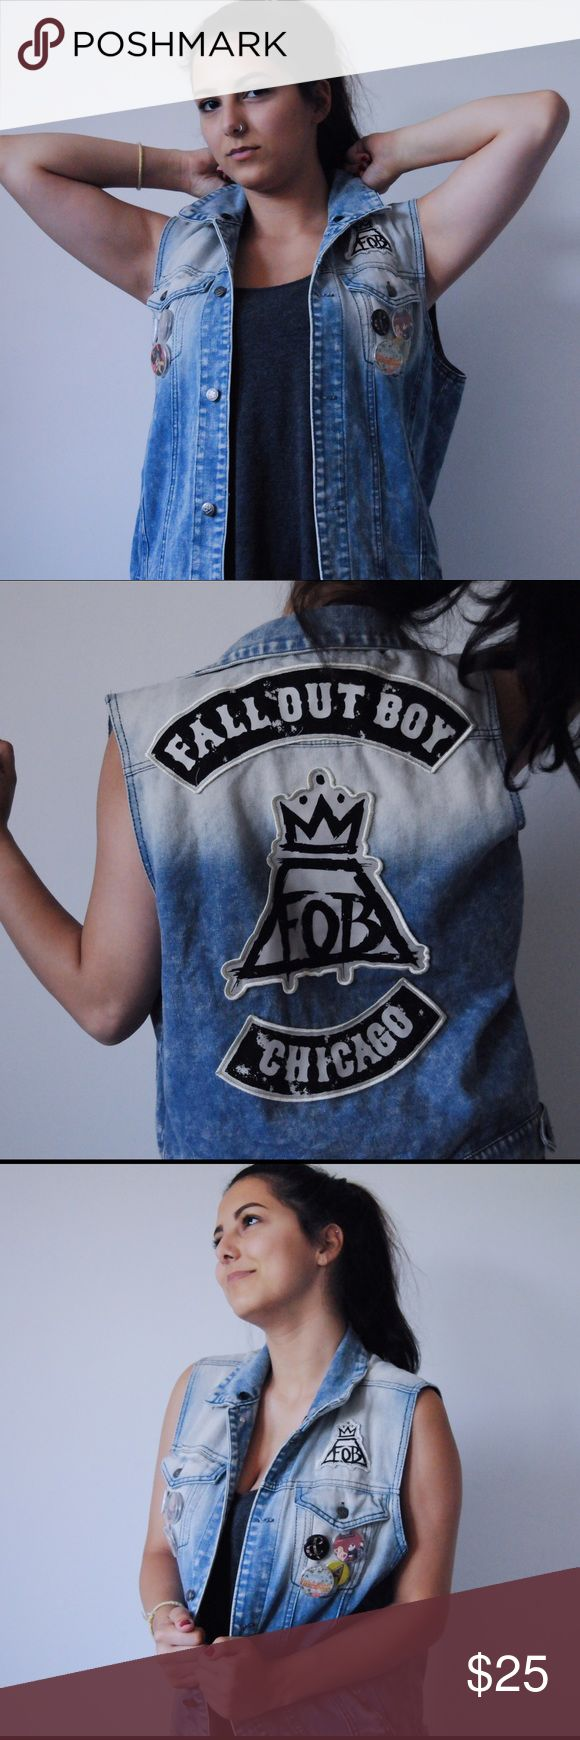 "Fall out Boy Limited Edition Denim Vest ✨Limited edition✨Official FOB merch. Denim vest with two breast pockets, two additional pockets, fob crown/volcano patch over one breast pocket, larger version of same patch on back with ""FALL OUT BOY"" patch above and ""CHICAGO"" patch below. White to blue ombre starting from top of the vest. Also includes unique buttons with crown symbol (like on the patches) **The pins in the photos are not included but if anyone is interested I can sell separately** ✨…"